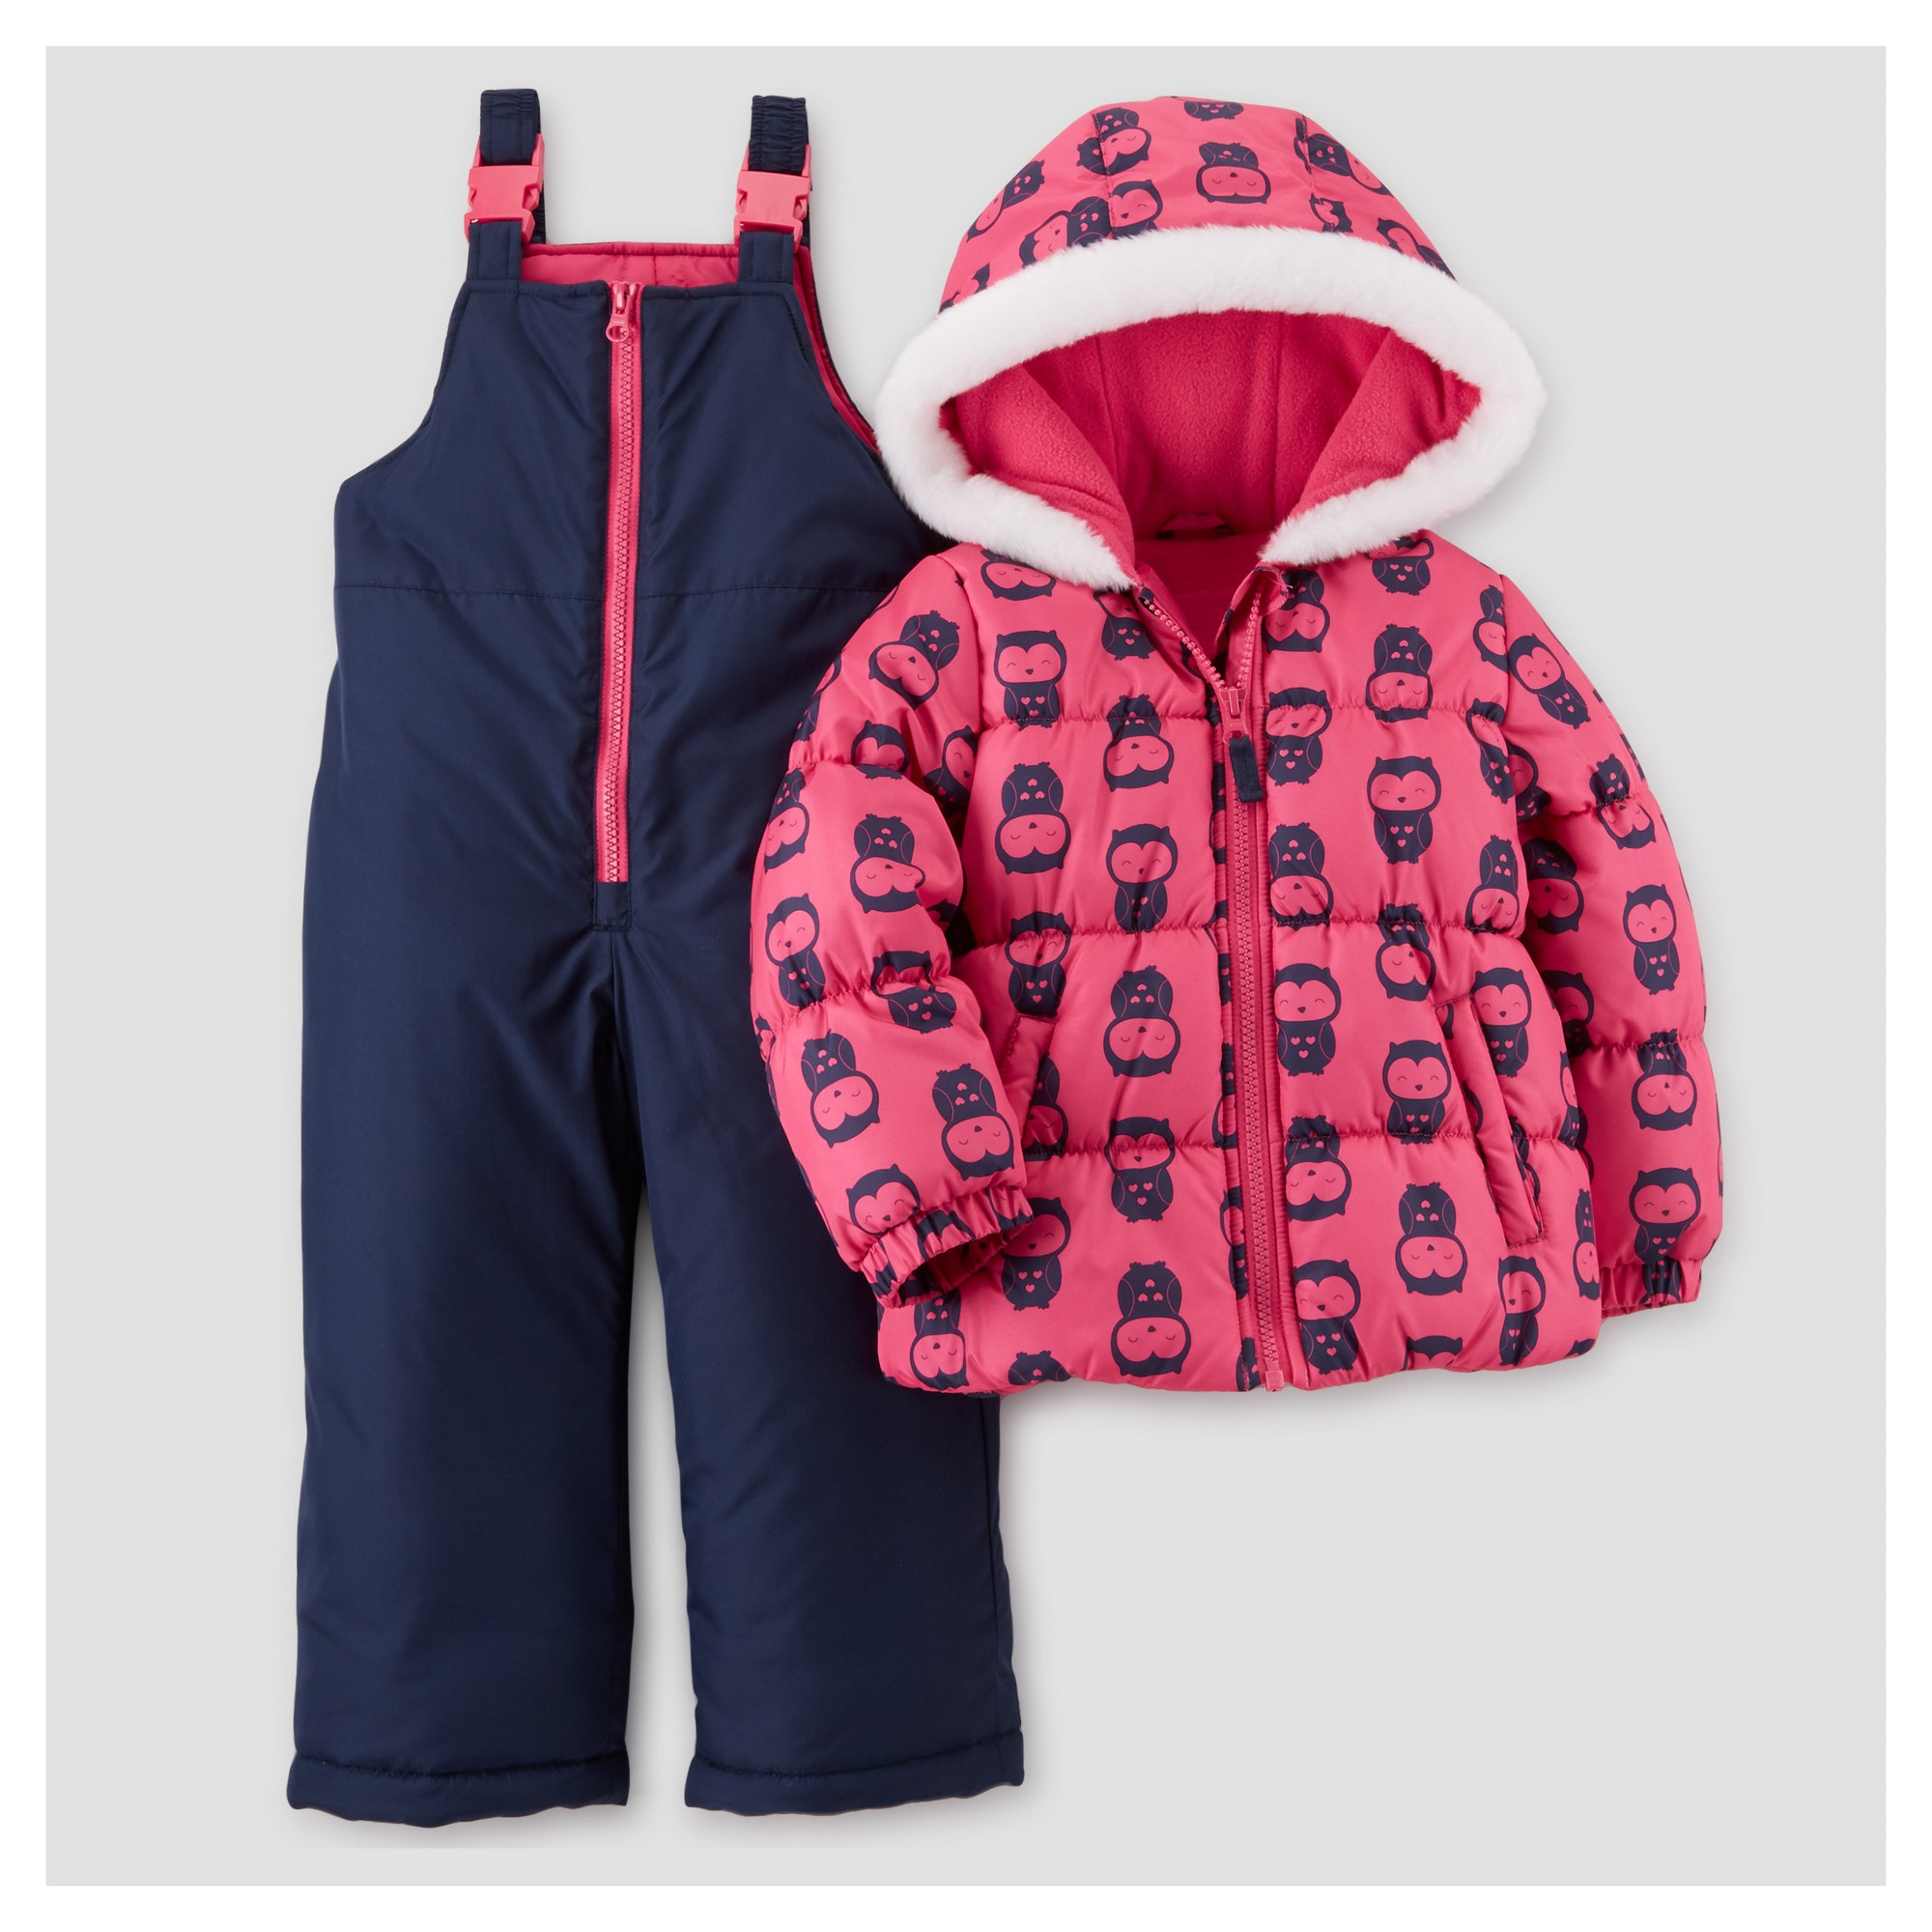 ea9f1d1bc Toddler Girls  Outerwear Set - Just One You Made by Carter s Pink ...